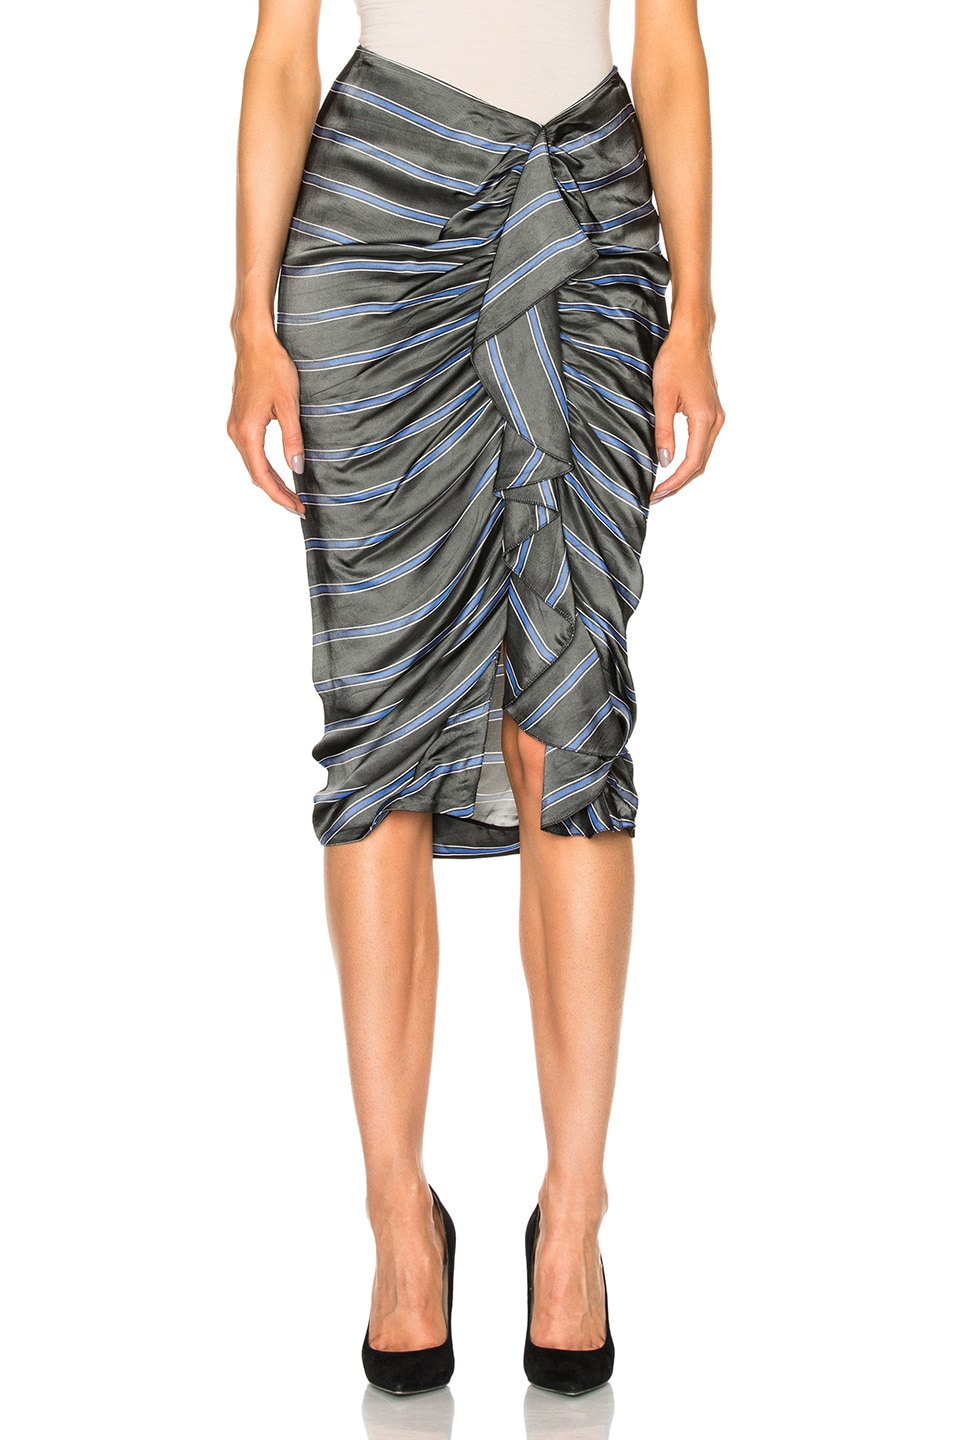 Image 1 of Veronica Beard Drew Cascade Ruffle Pencil Skirt in Black, Blue & White Stripes